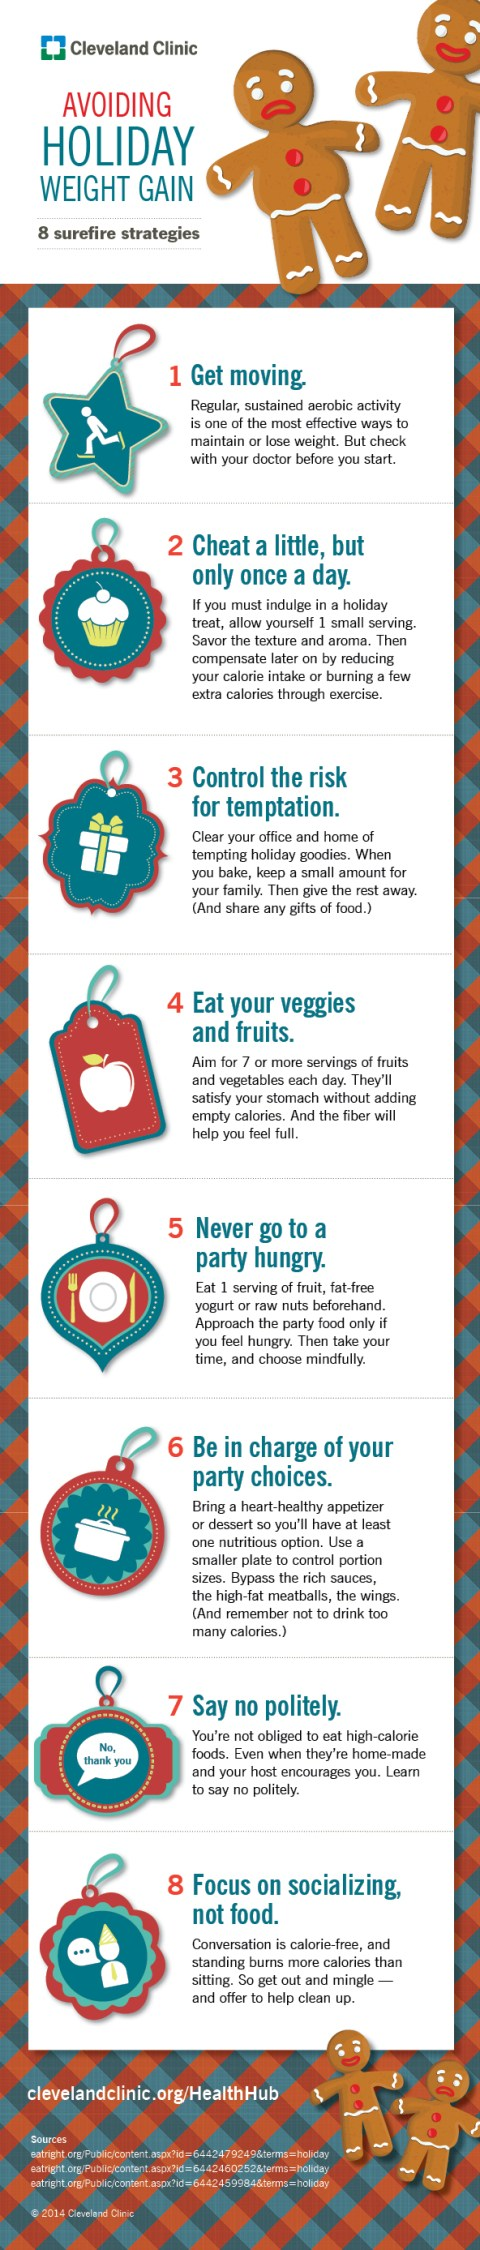 Stay Safe This Holiday Season: Be Careful in Your Eating